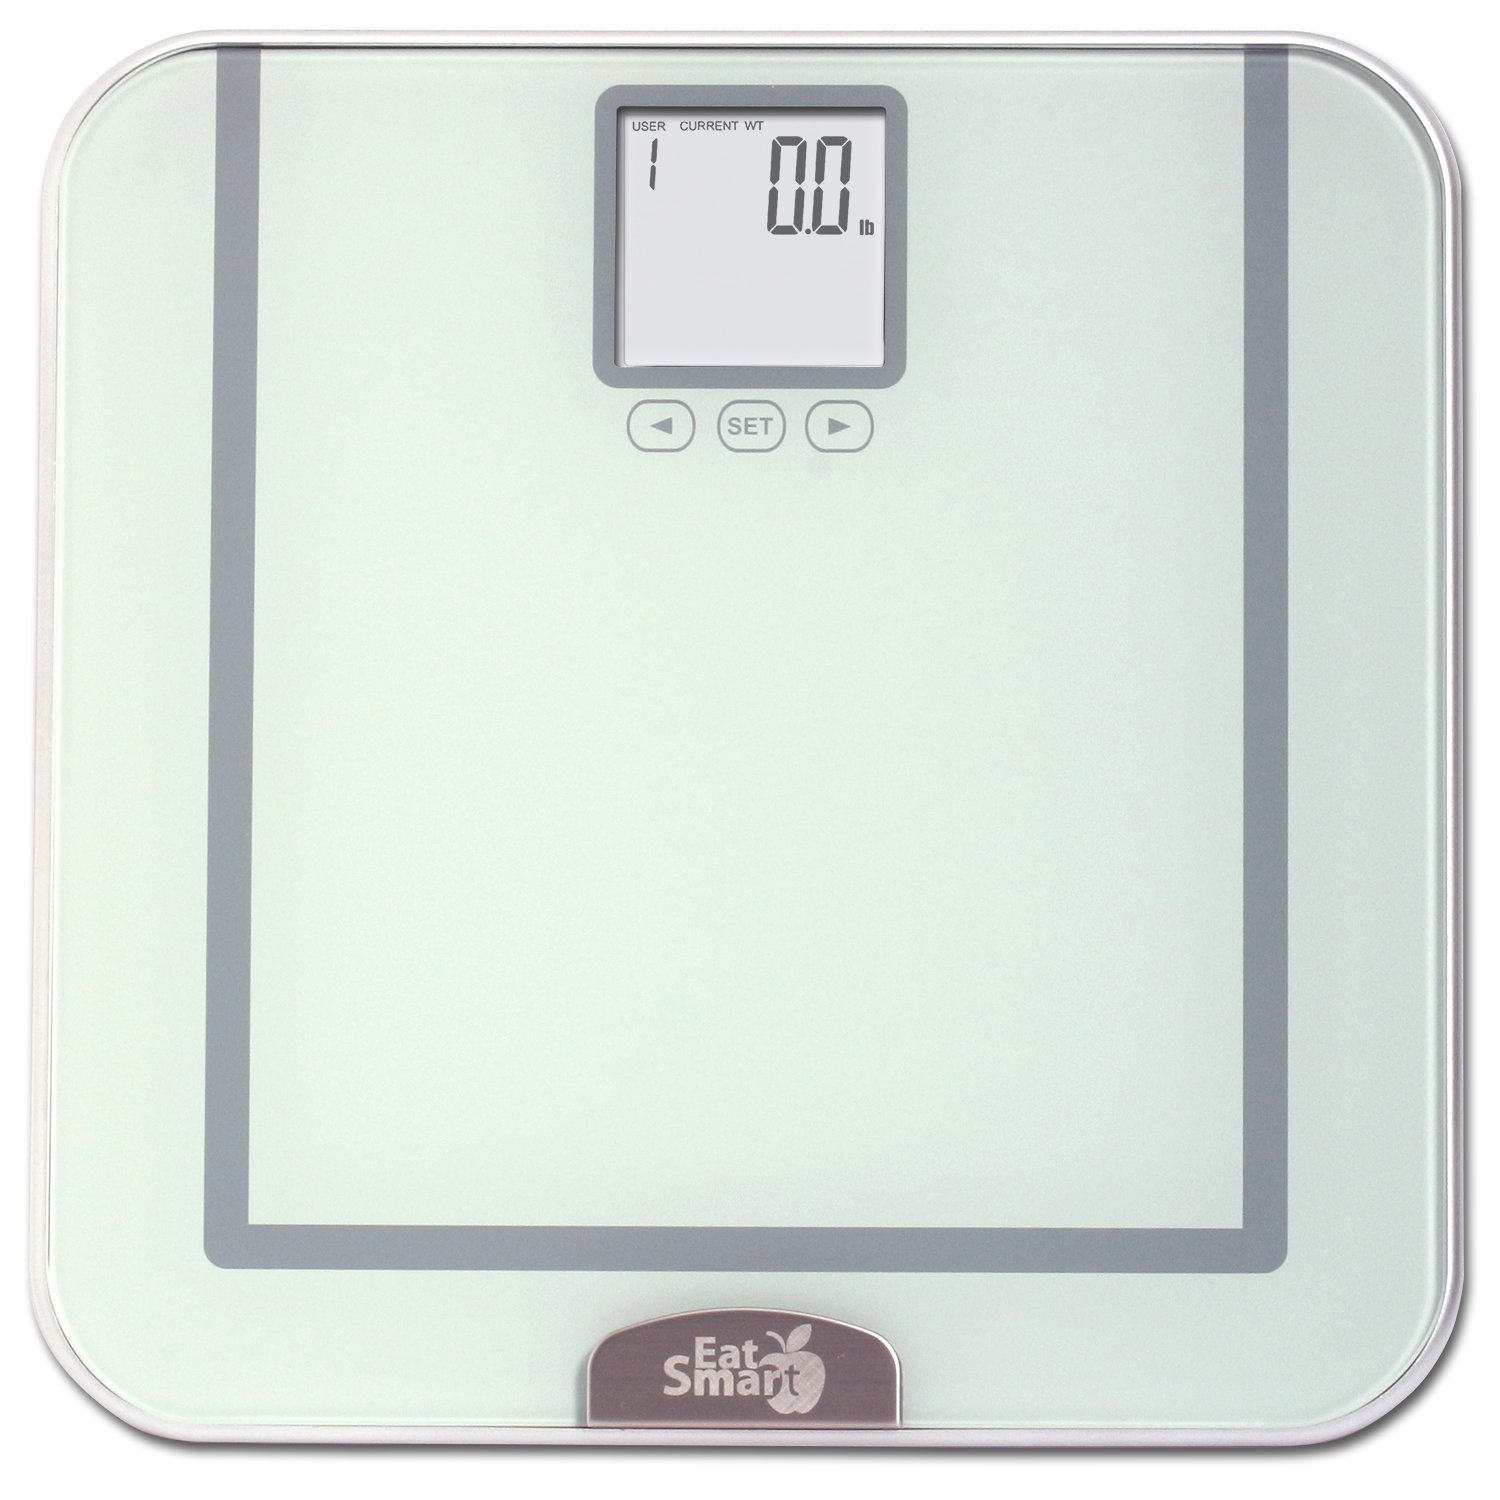 Bathroom scale accuracy consistency - Amazon Com Eatsmart Precision Tracker Digital Bathroom Scale W 400 Lb Capacity And Eatsmart Accutrack Software Silver Health Personal Care